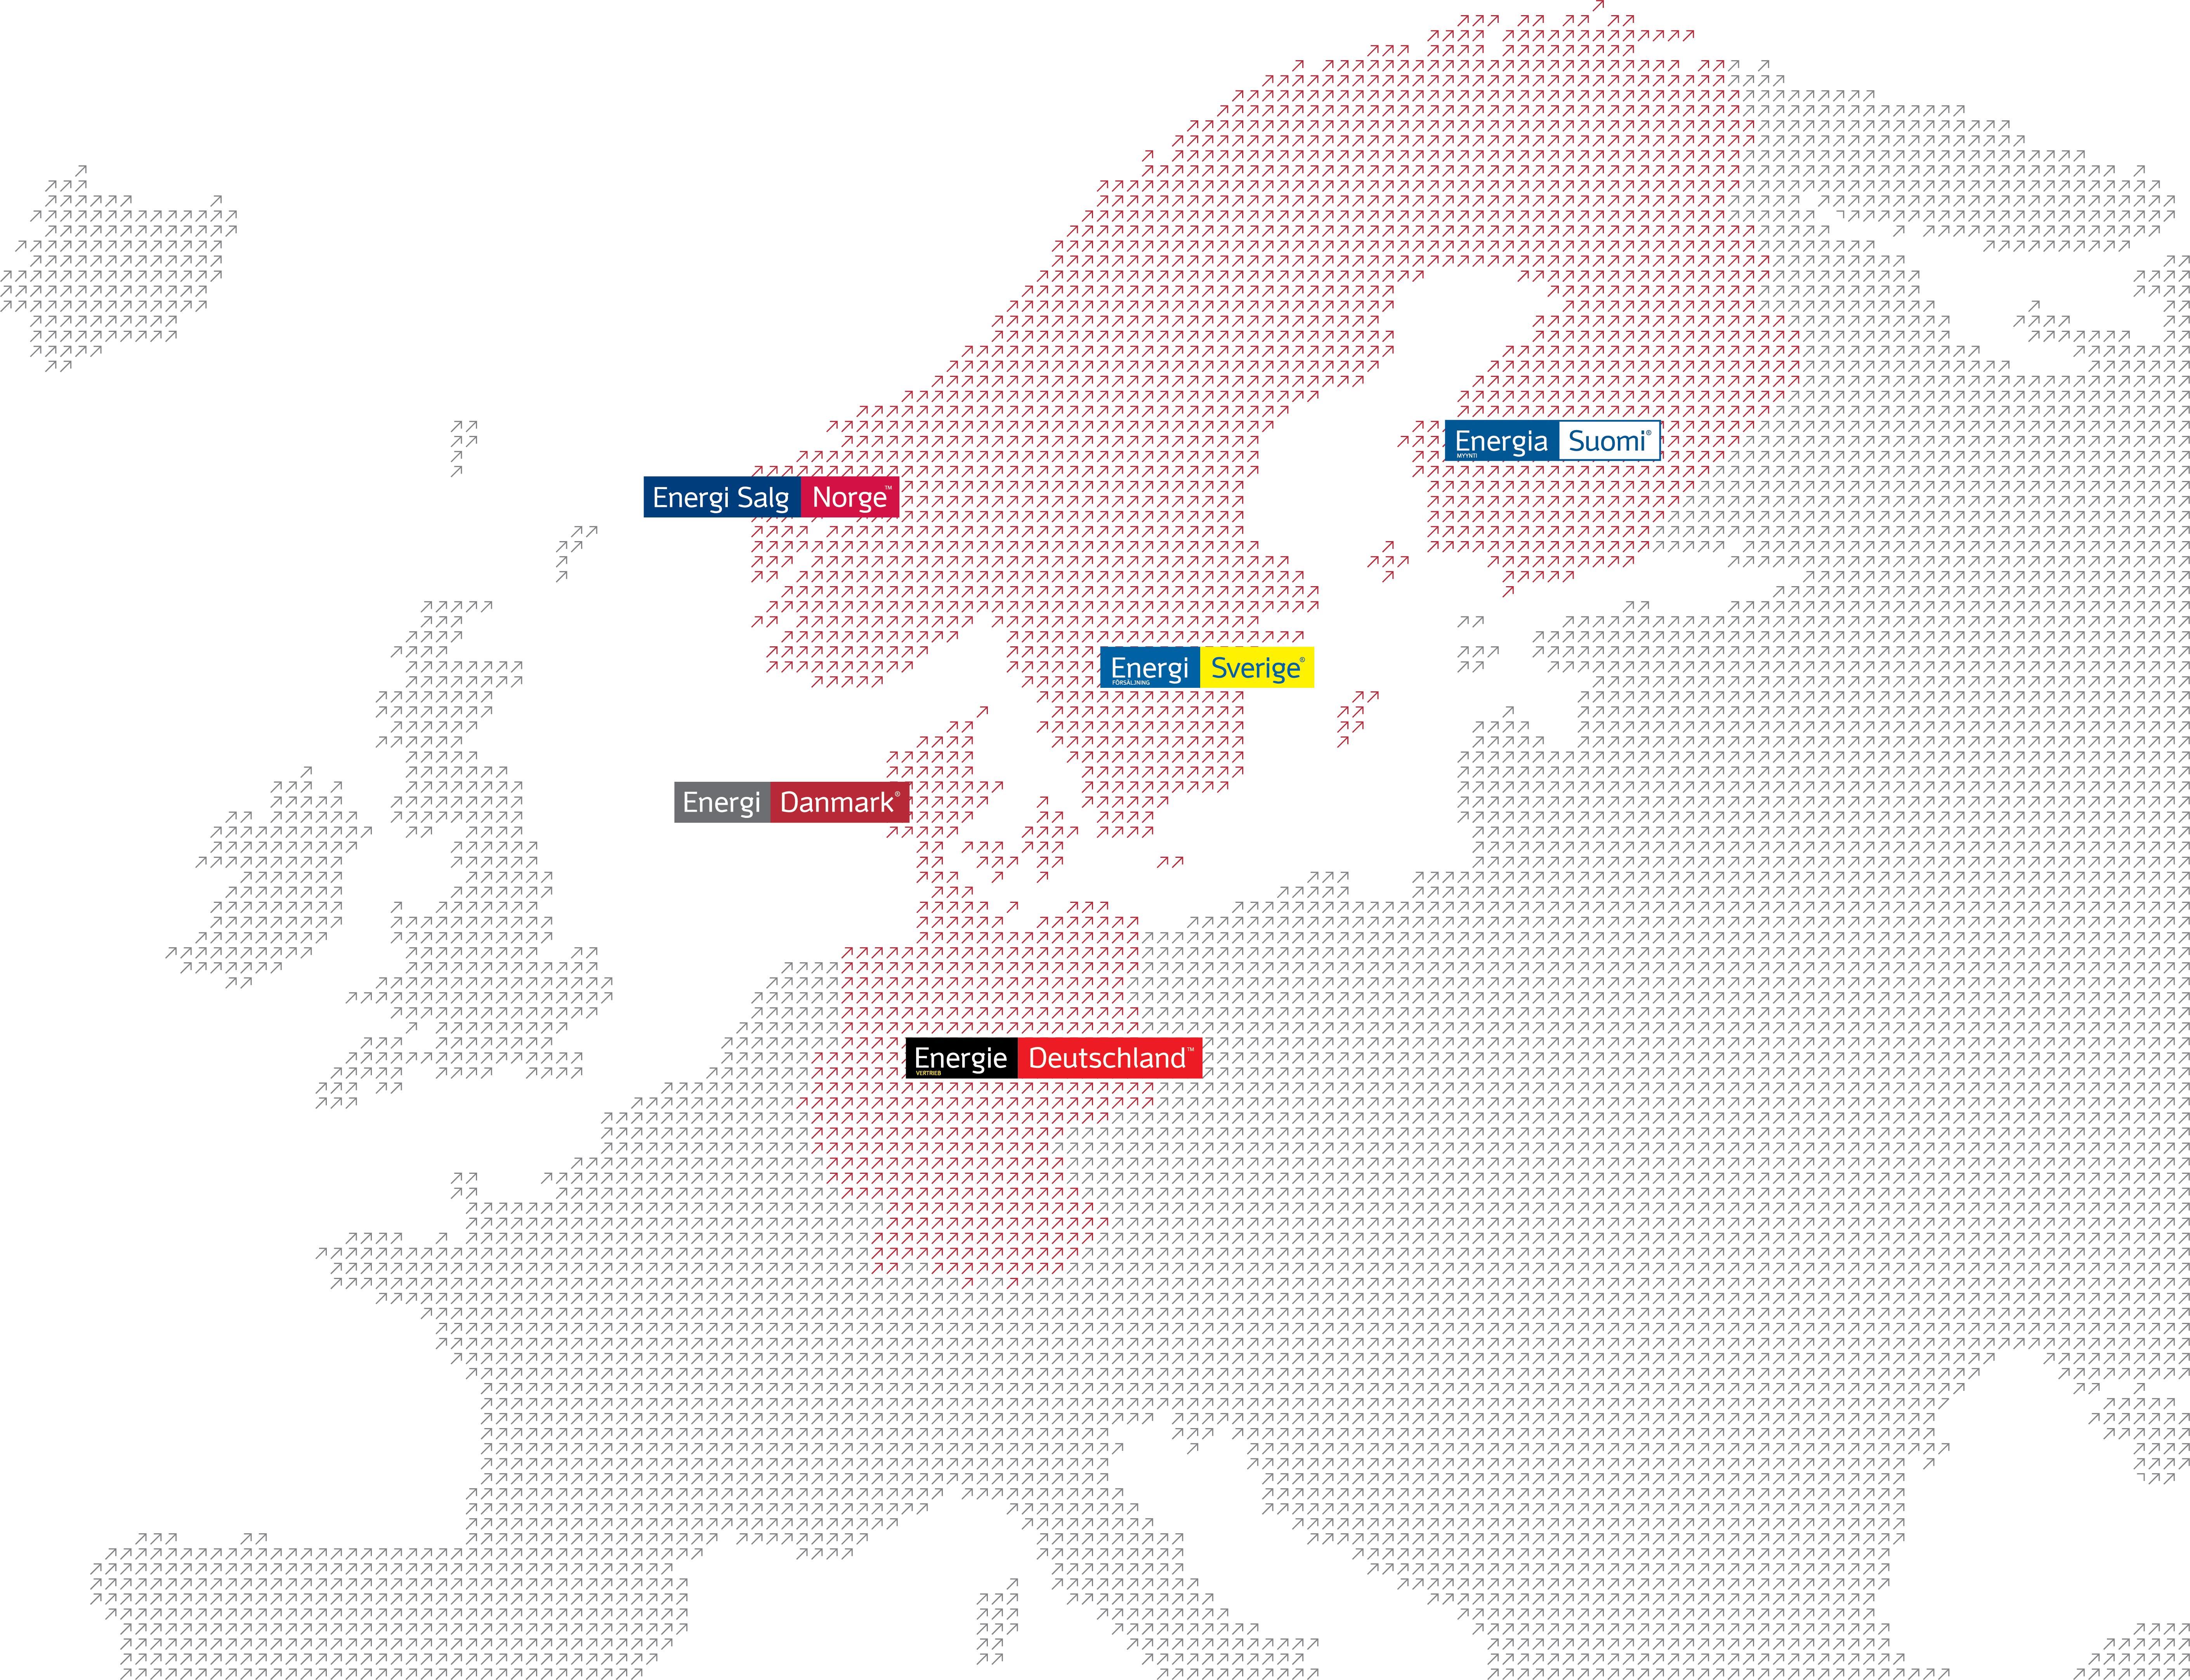 Map with logos - Energi Danmark Group